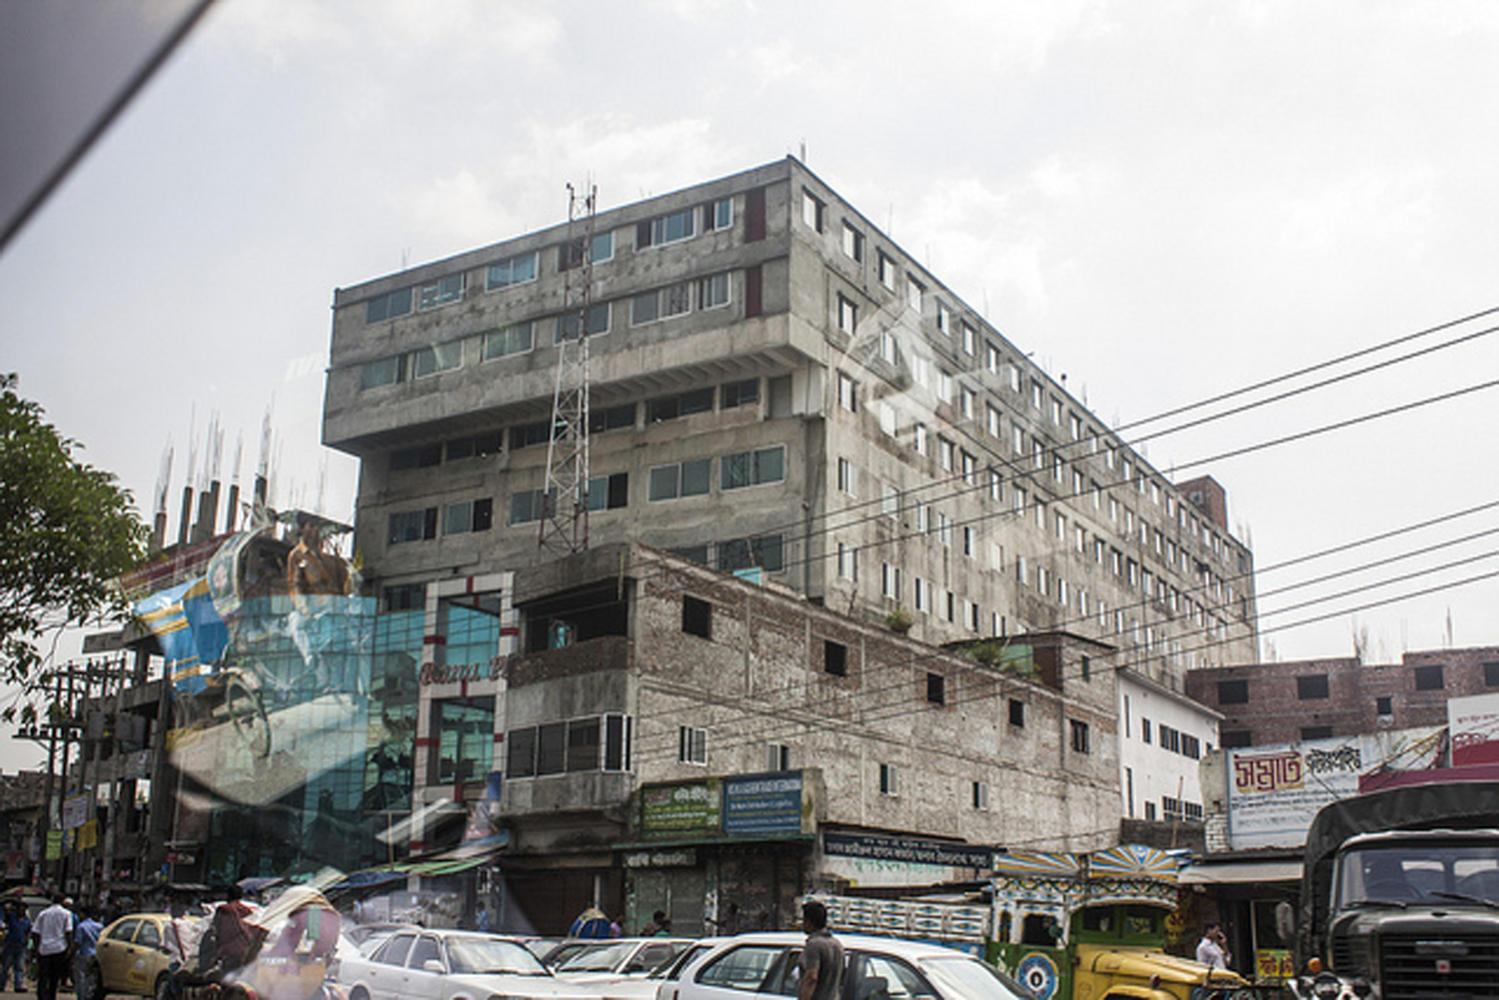 The Rana Plaza building was a five-story garment factory that collapsed in April 2013 after the building's owners ignored warnings to avoid using the building the day before. (Photo via Wikimedia Commons)